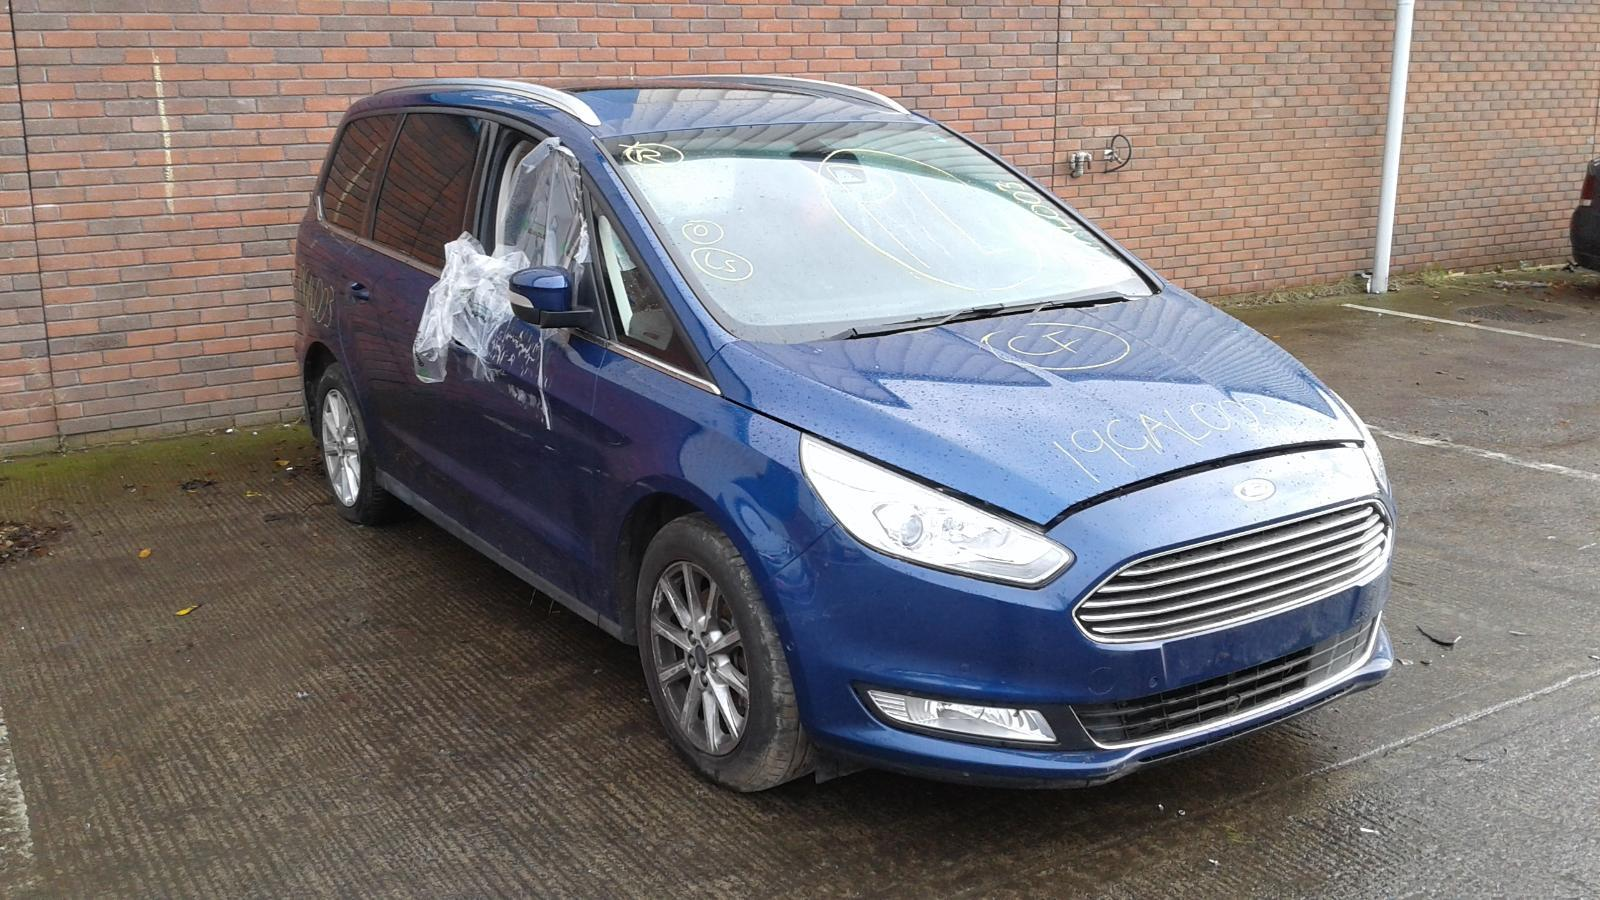 2017 FORD GALAXY Image